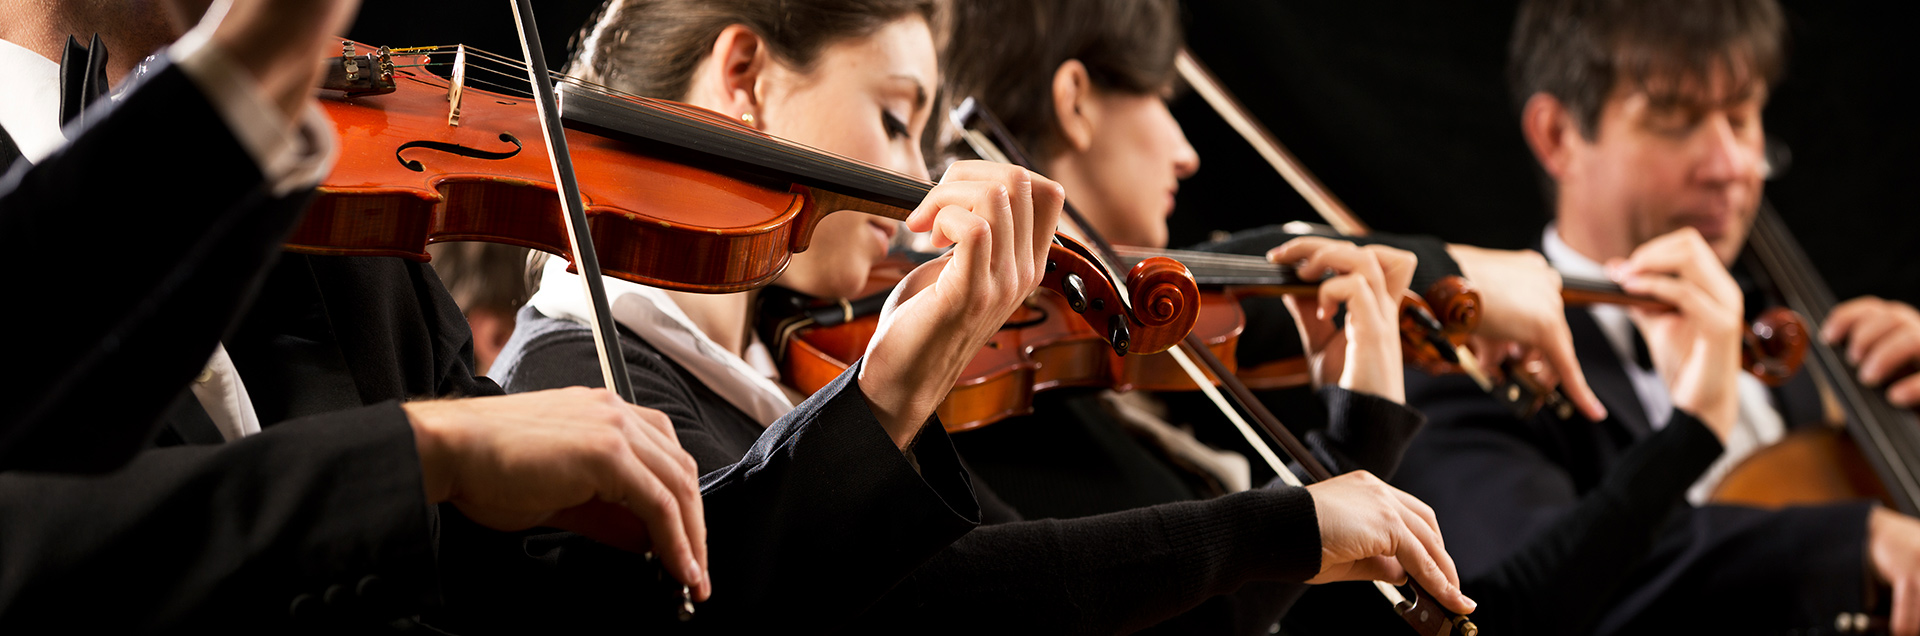 Students playing violin at a not-for-profit college or university